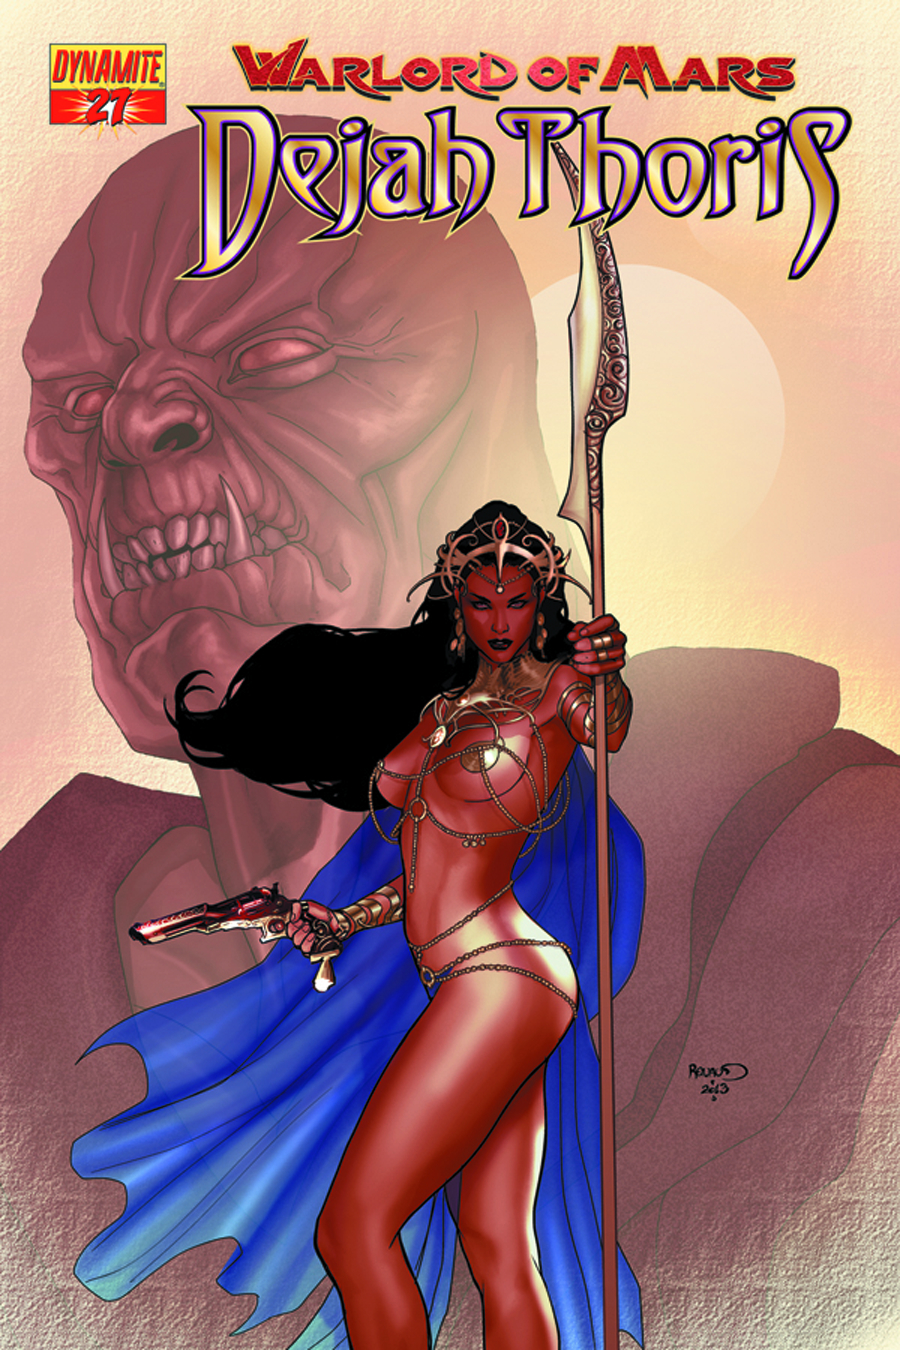 WARLORD OF MARS DEJAH THORIS #27